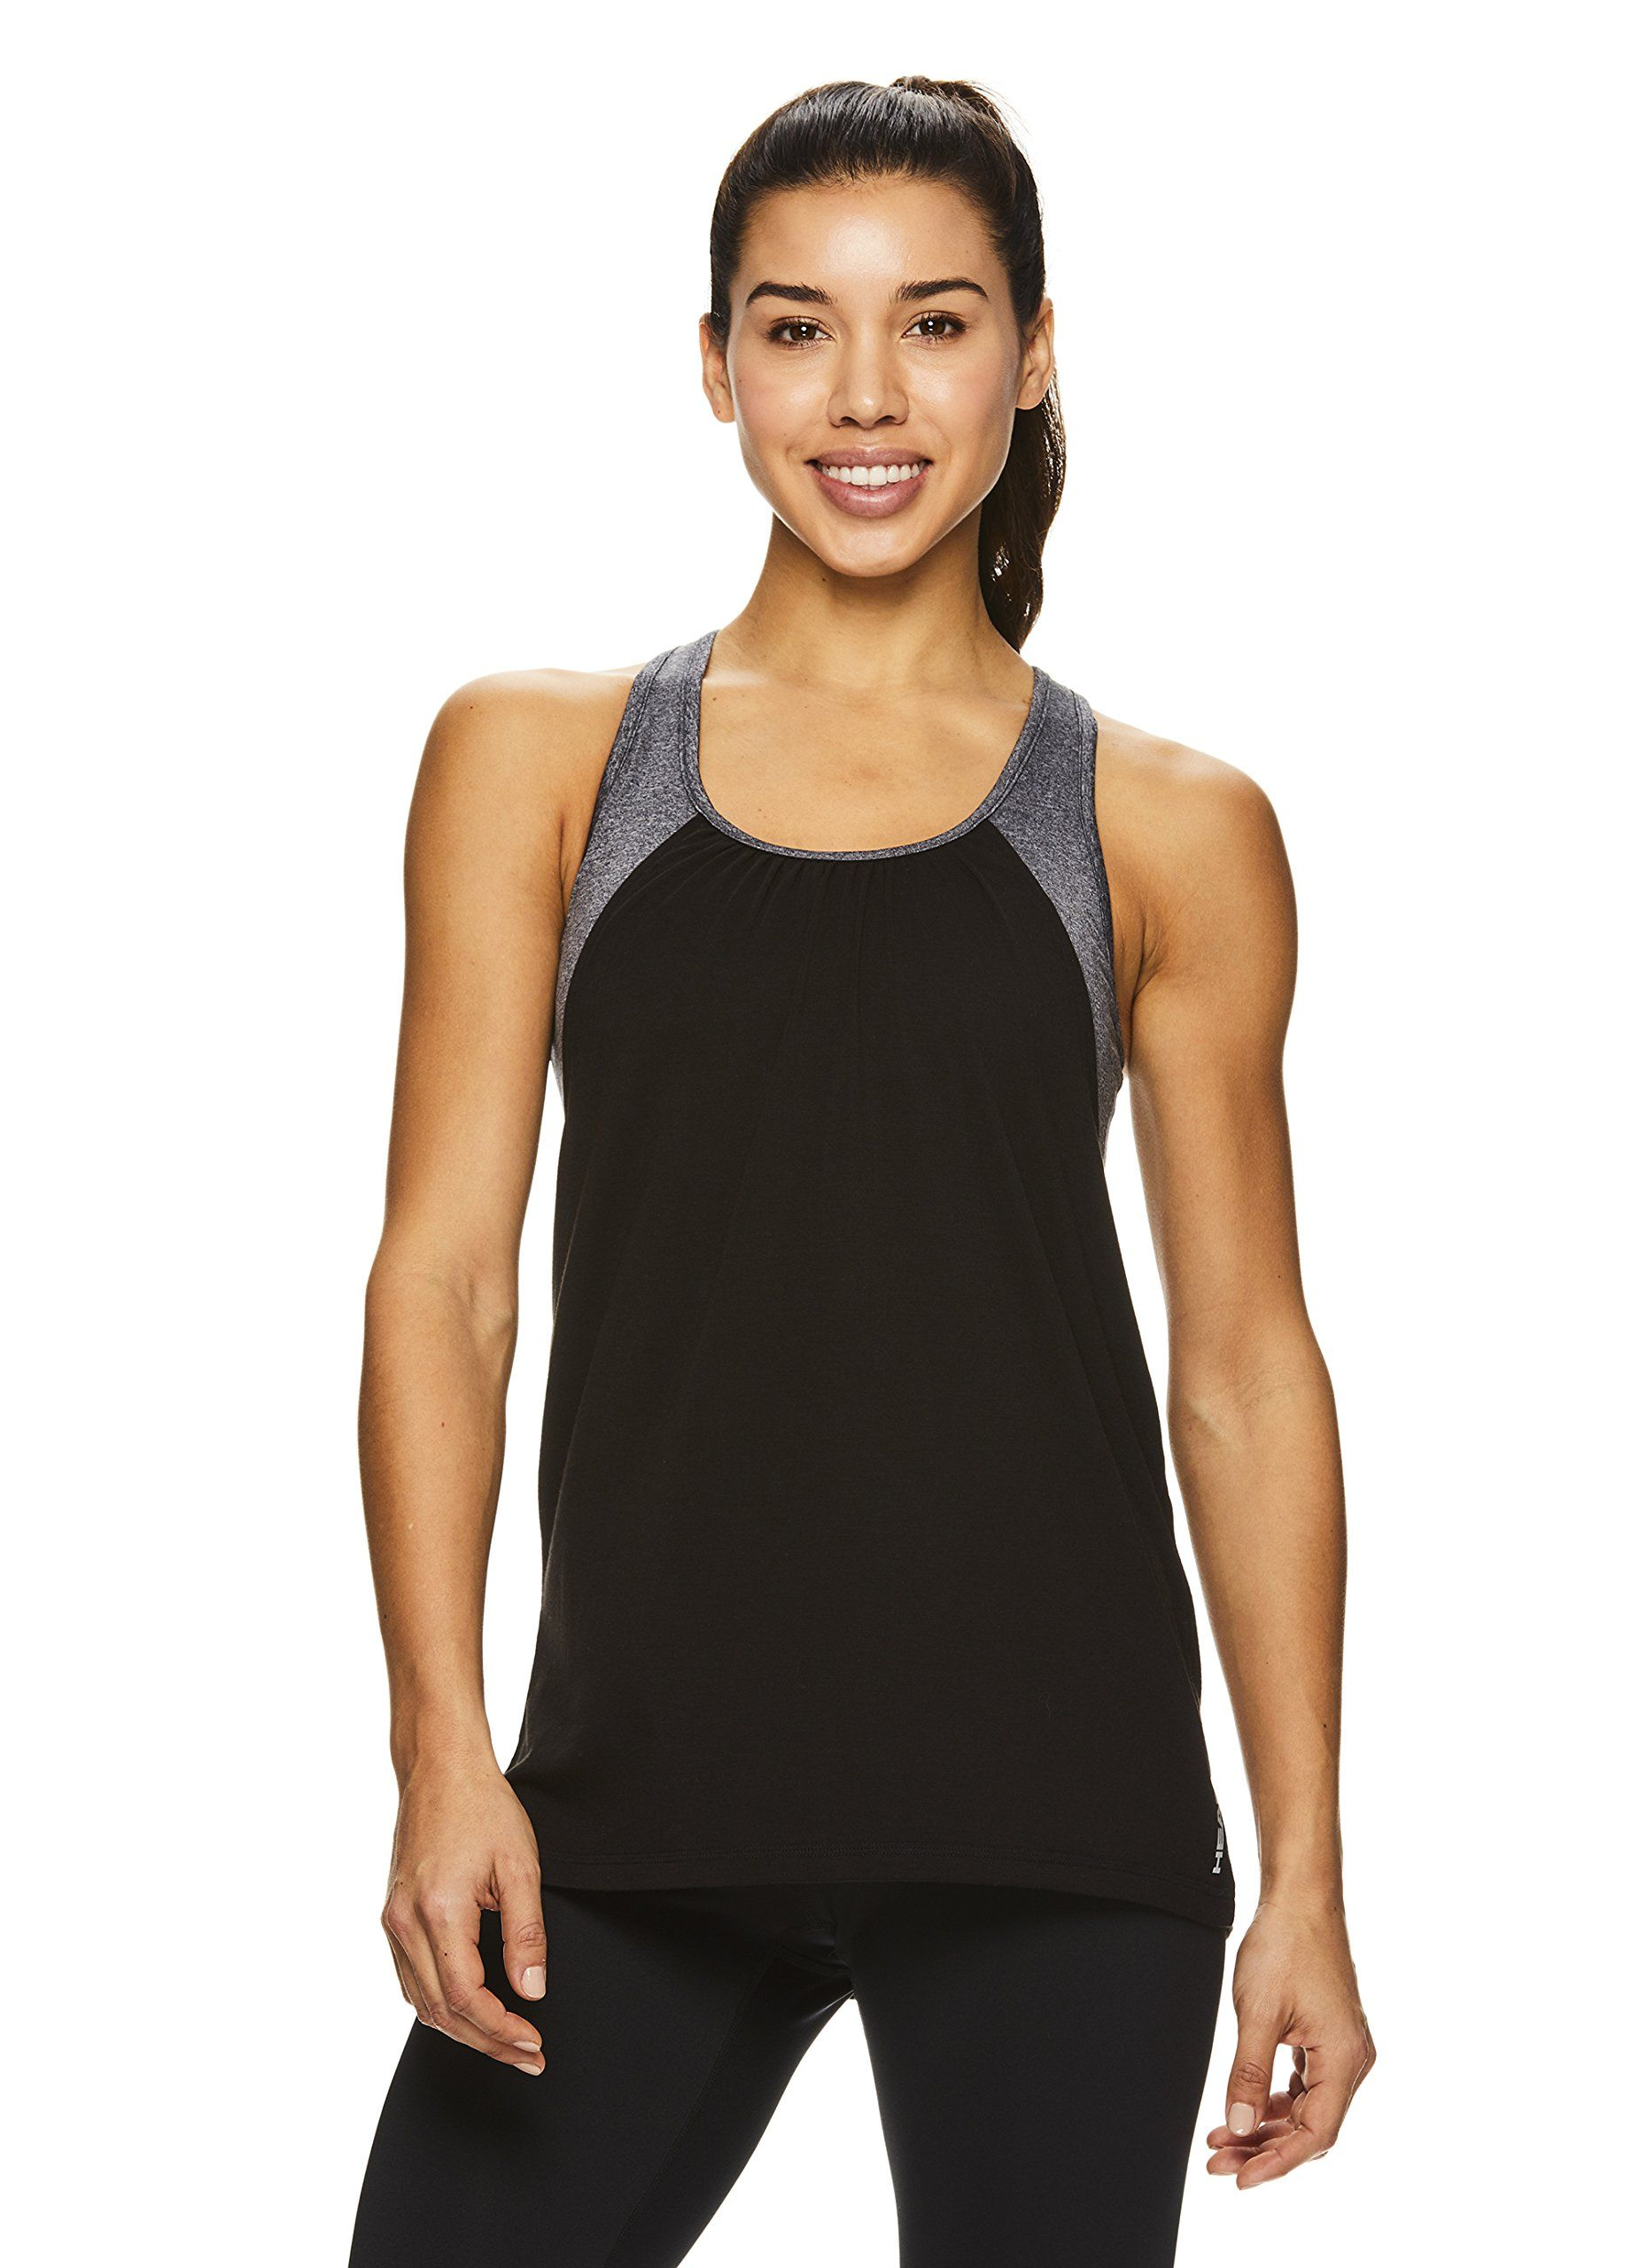 fa9429d294e pregnancy workout - HEAD Womens Contender Racerback Workout Tank Top w/Built  in Shelf Sports Bra Black Contender Medium * Find out more about the  terrific ...